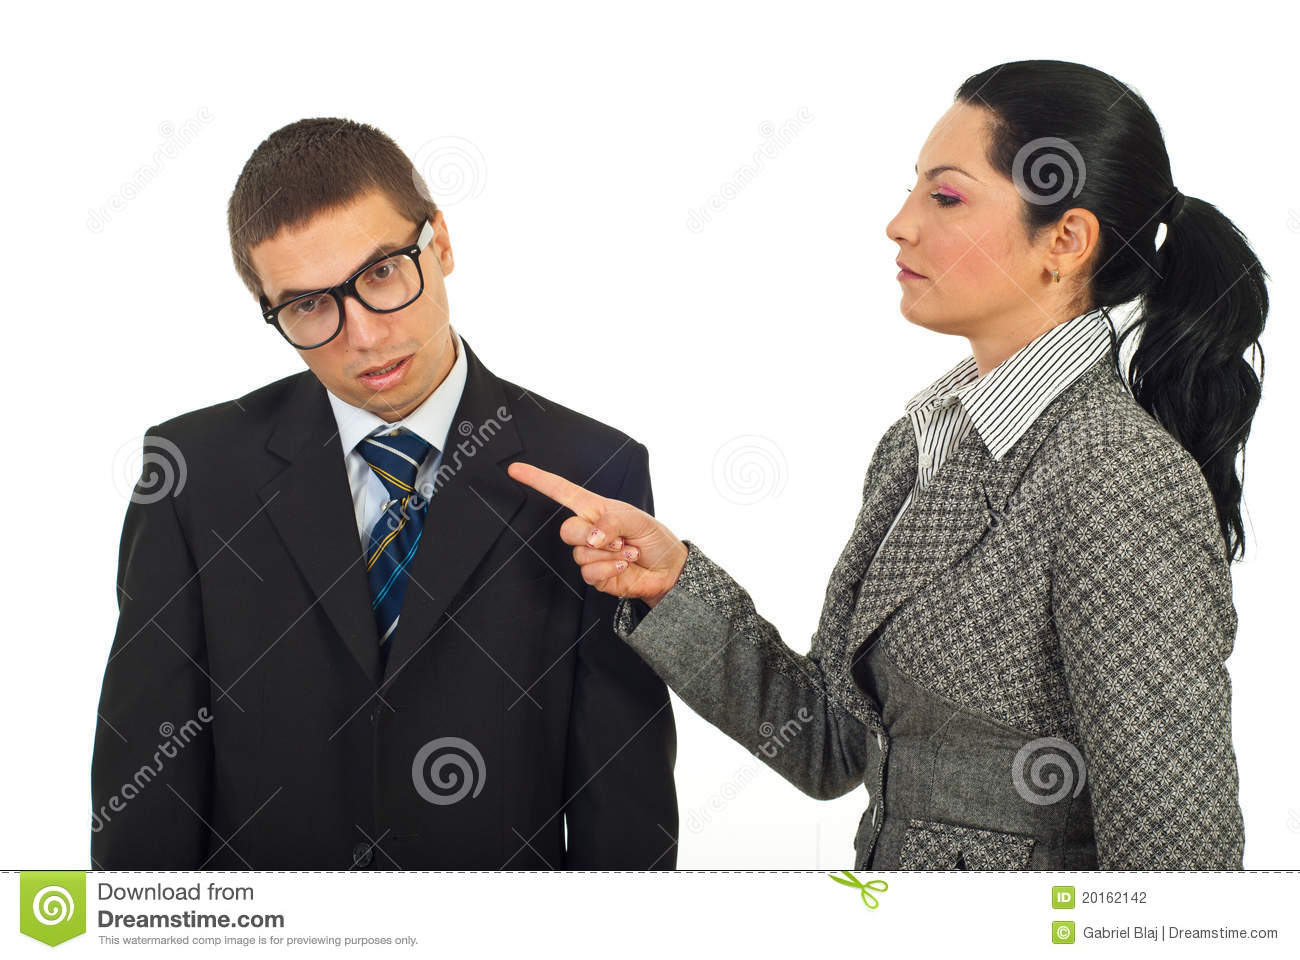 Accuse Royalty-Free Stock Photo | CartoonDealer.com #24625893